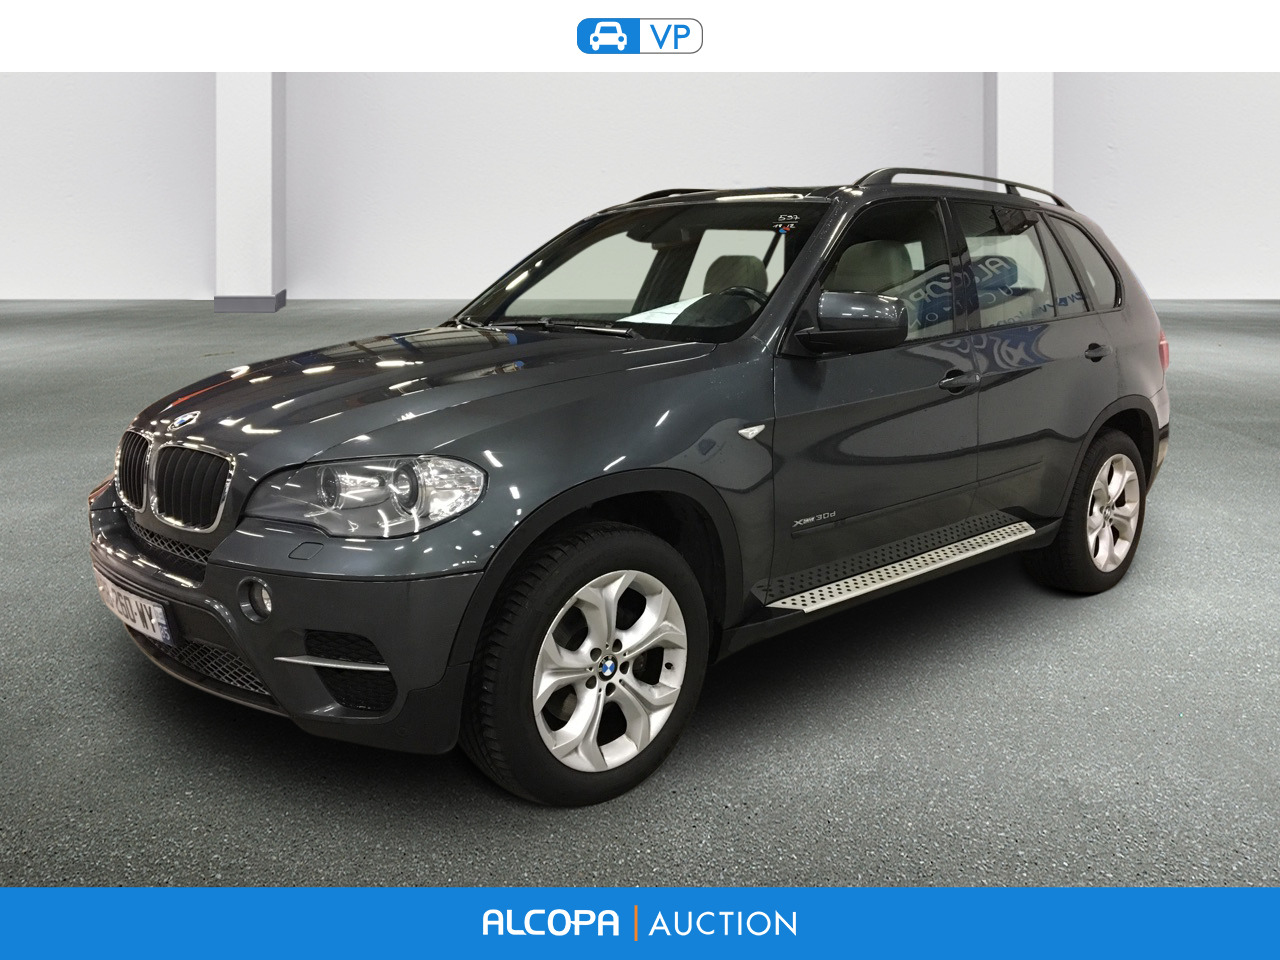 bmw x5 x5 xdrive30da 245ch exclusive 7 places rennes alcopa auction. Black Bedroom Furniture Sets. Home Design Ideas